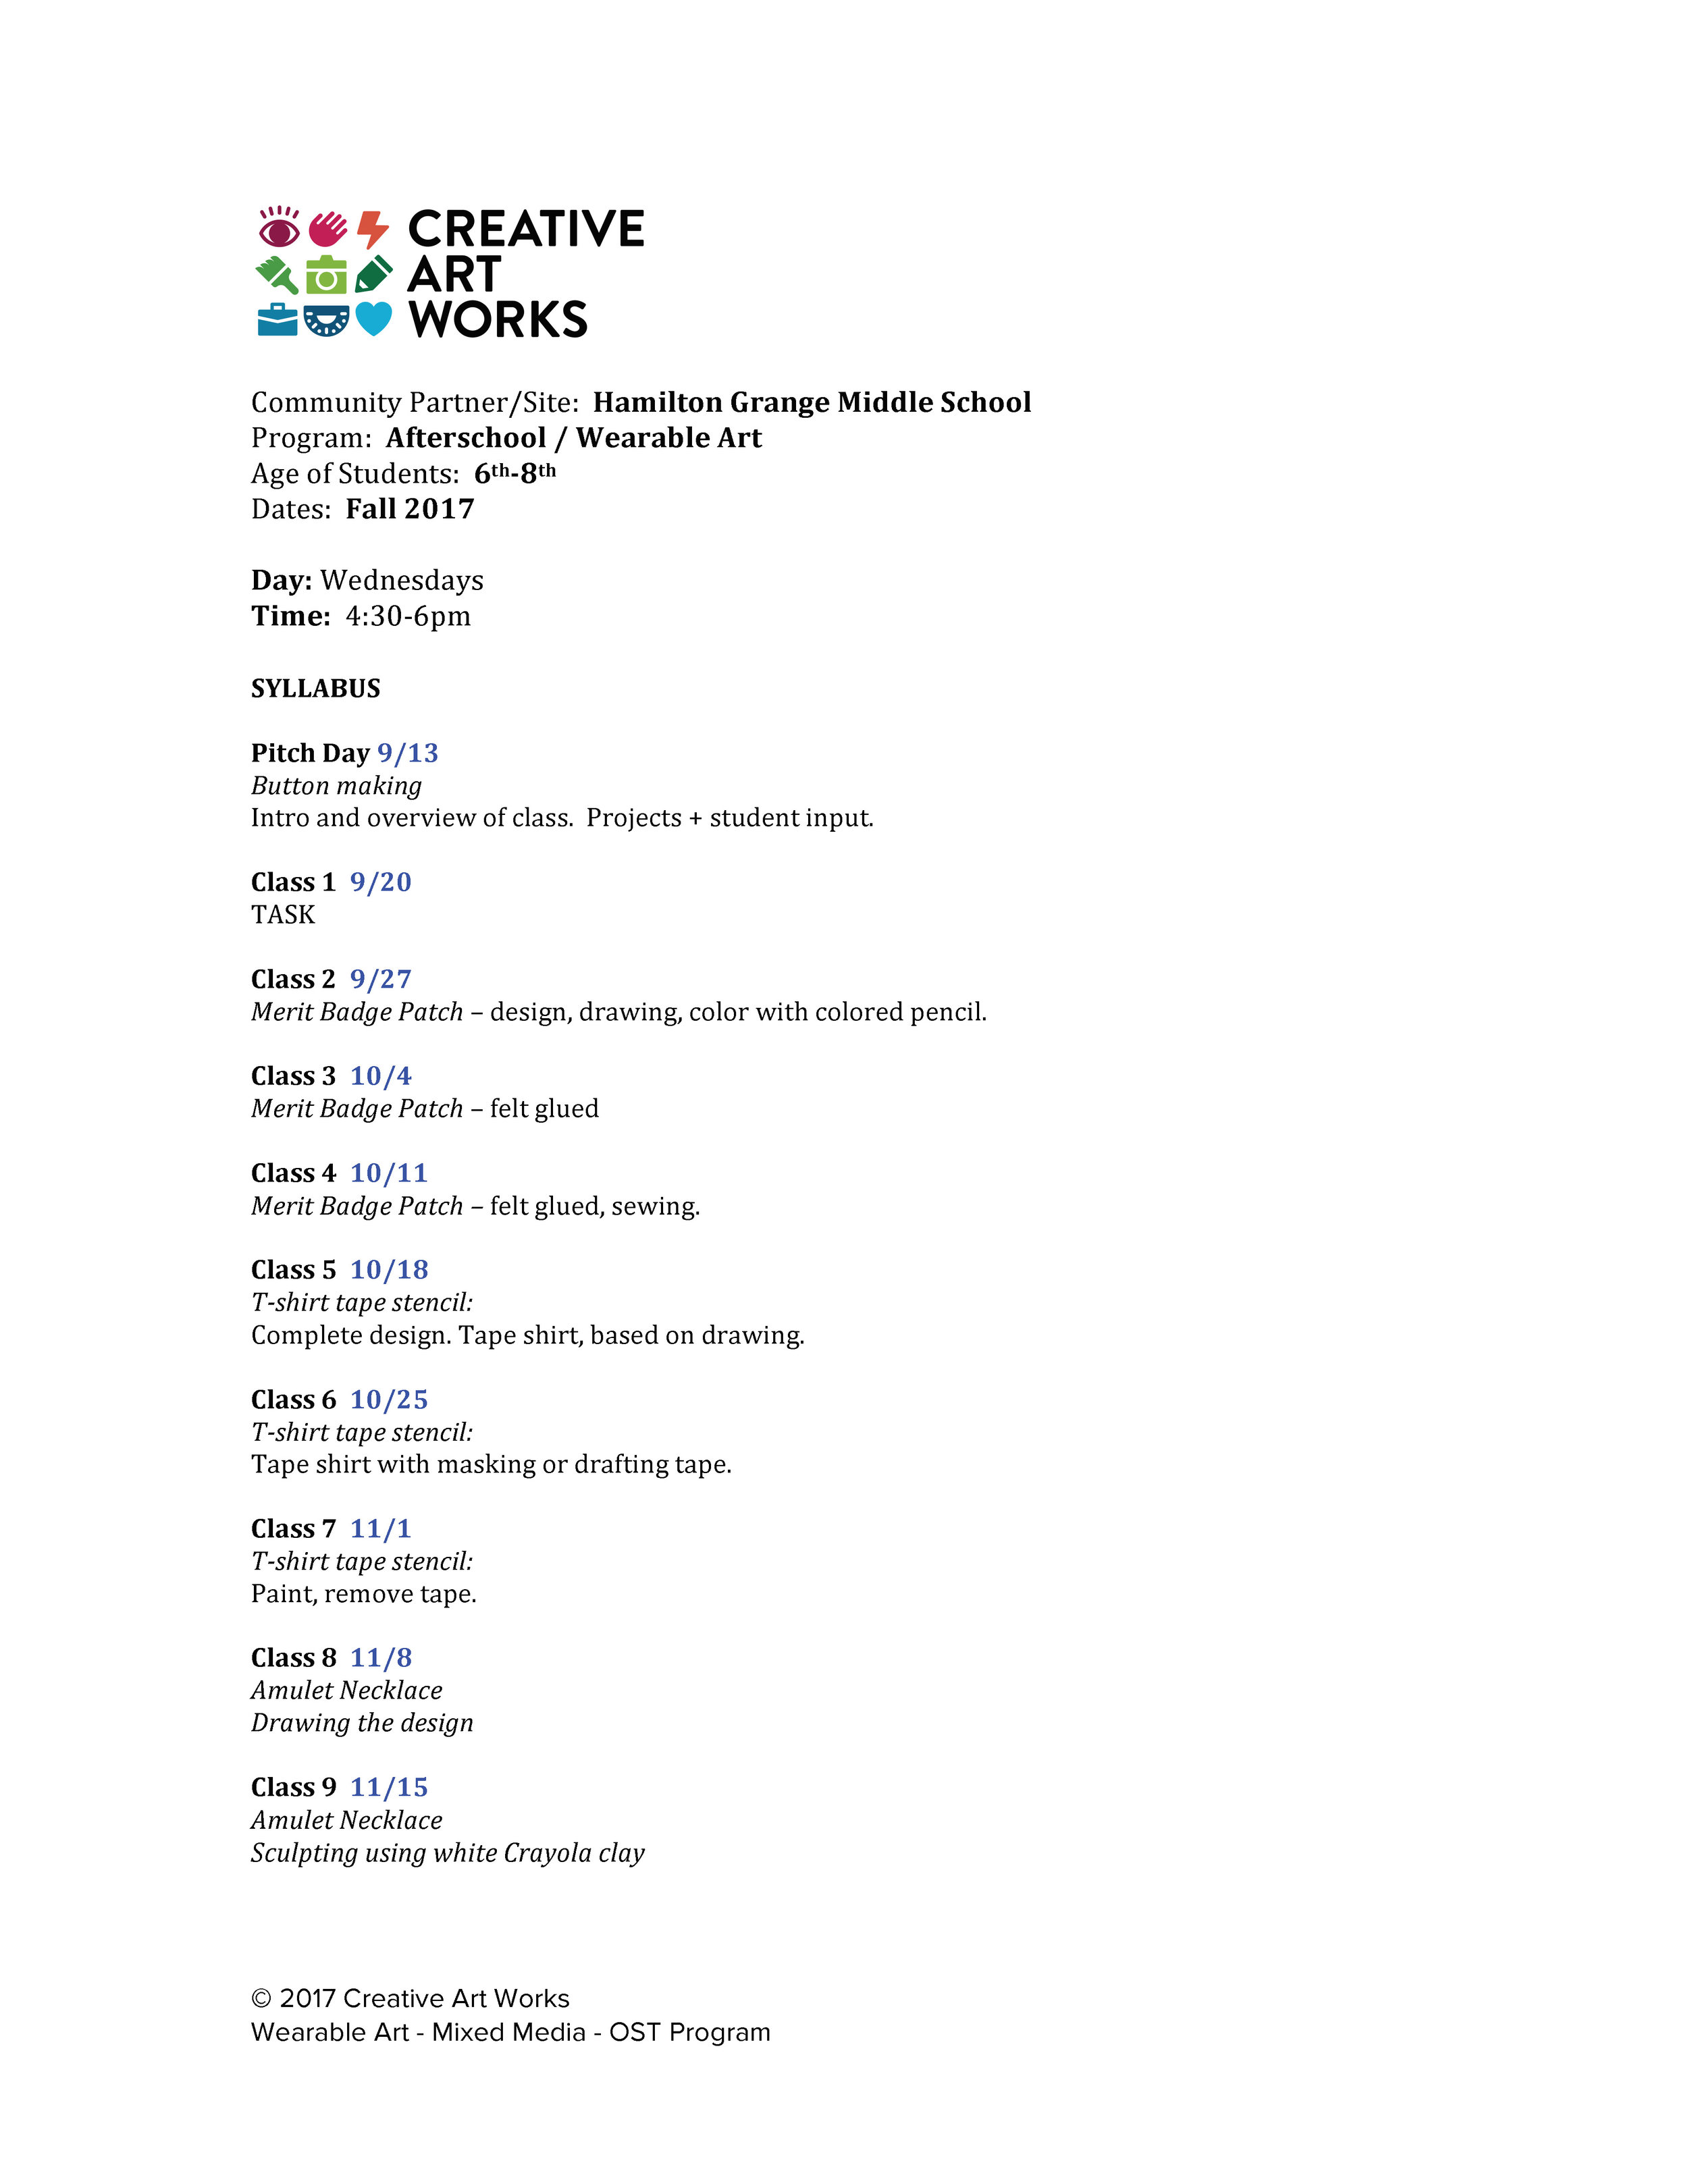 Click HERE to download a PDF of this Syllabus